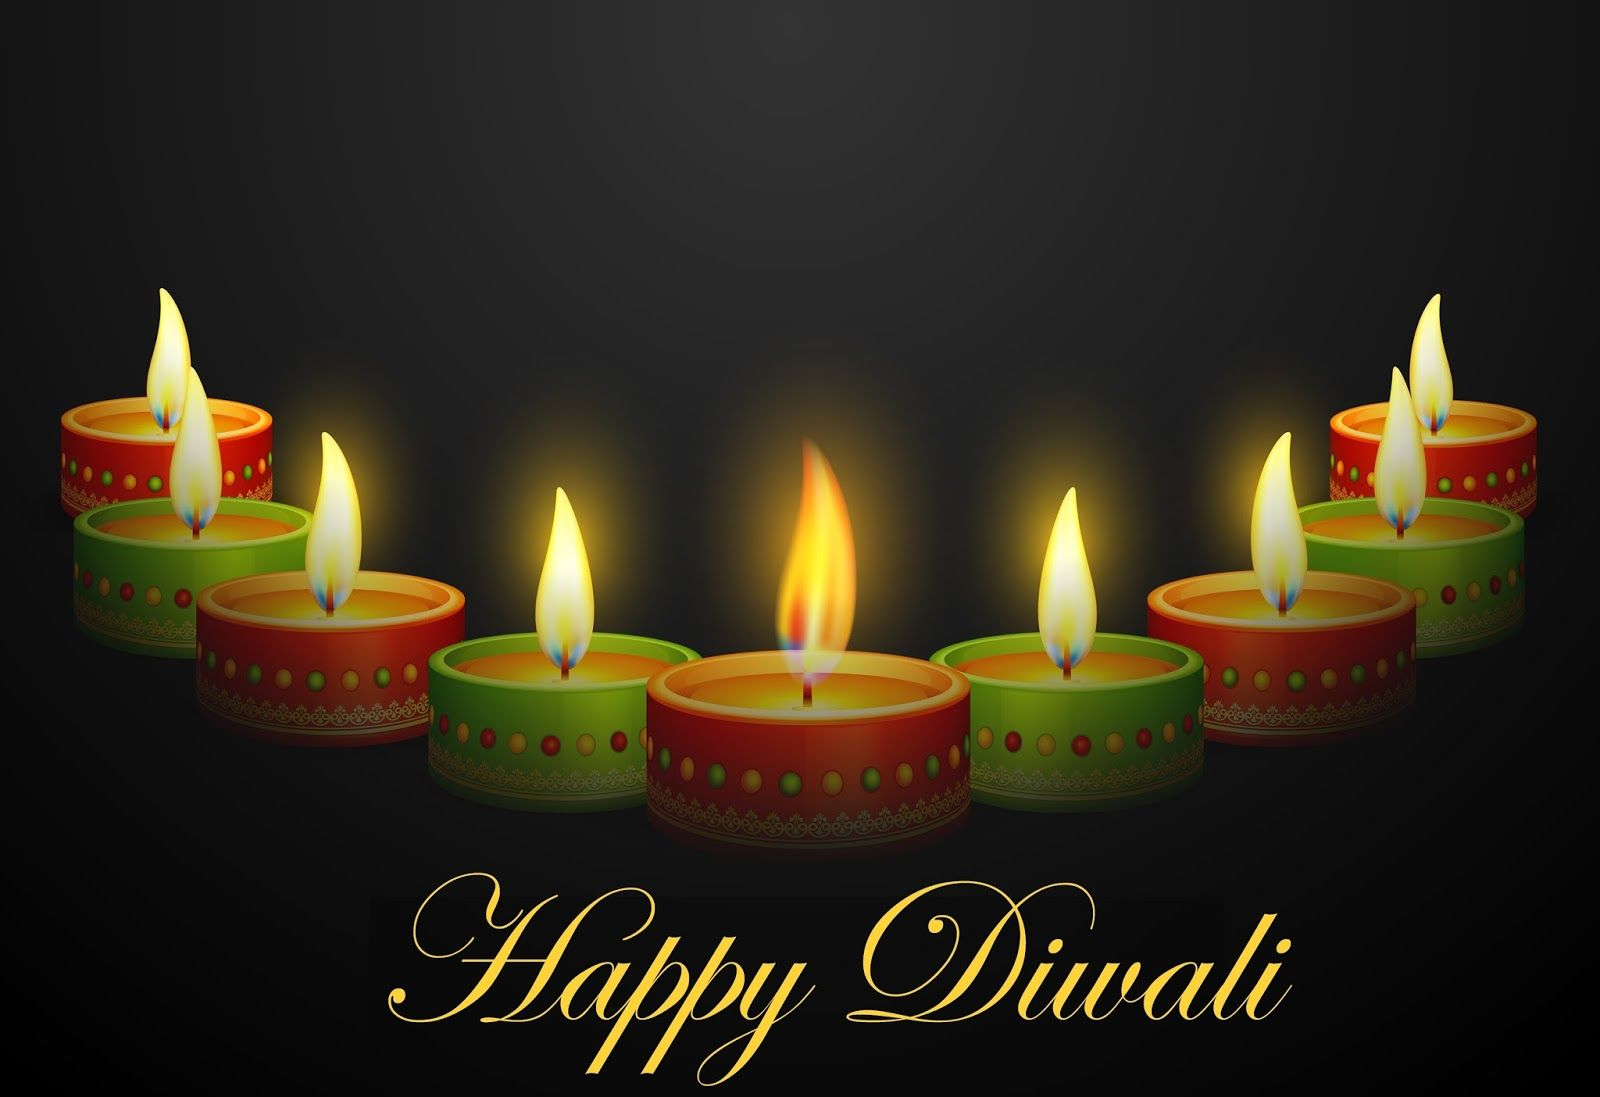 Happy Diwali Images 2018 Free Download For Whatsapp Facebook